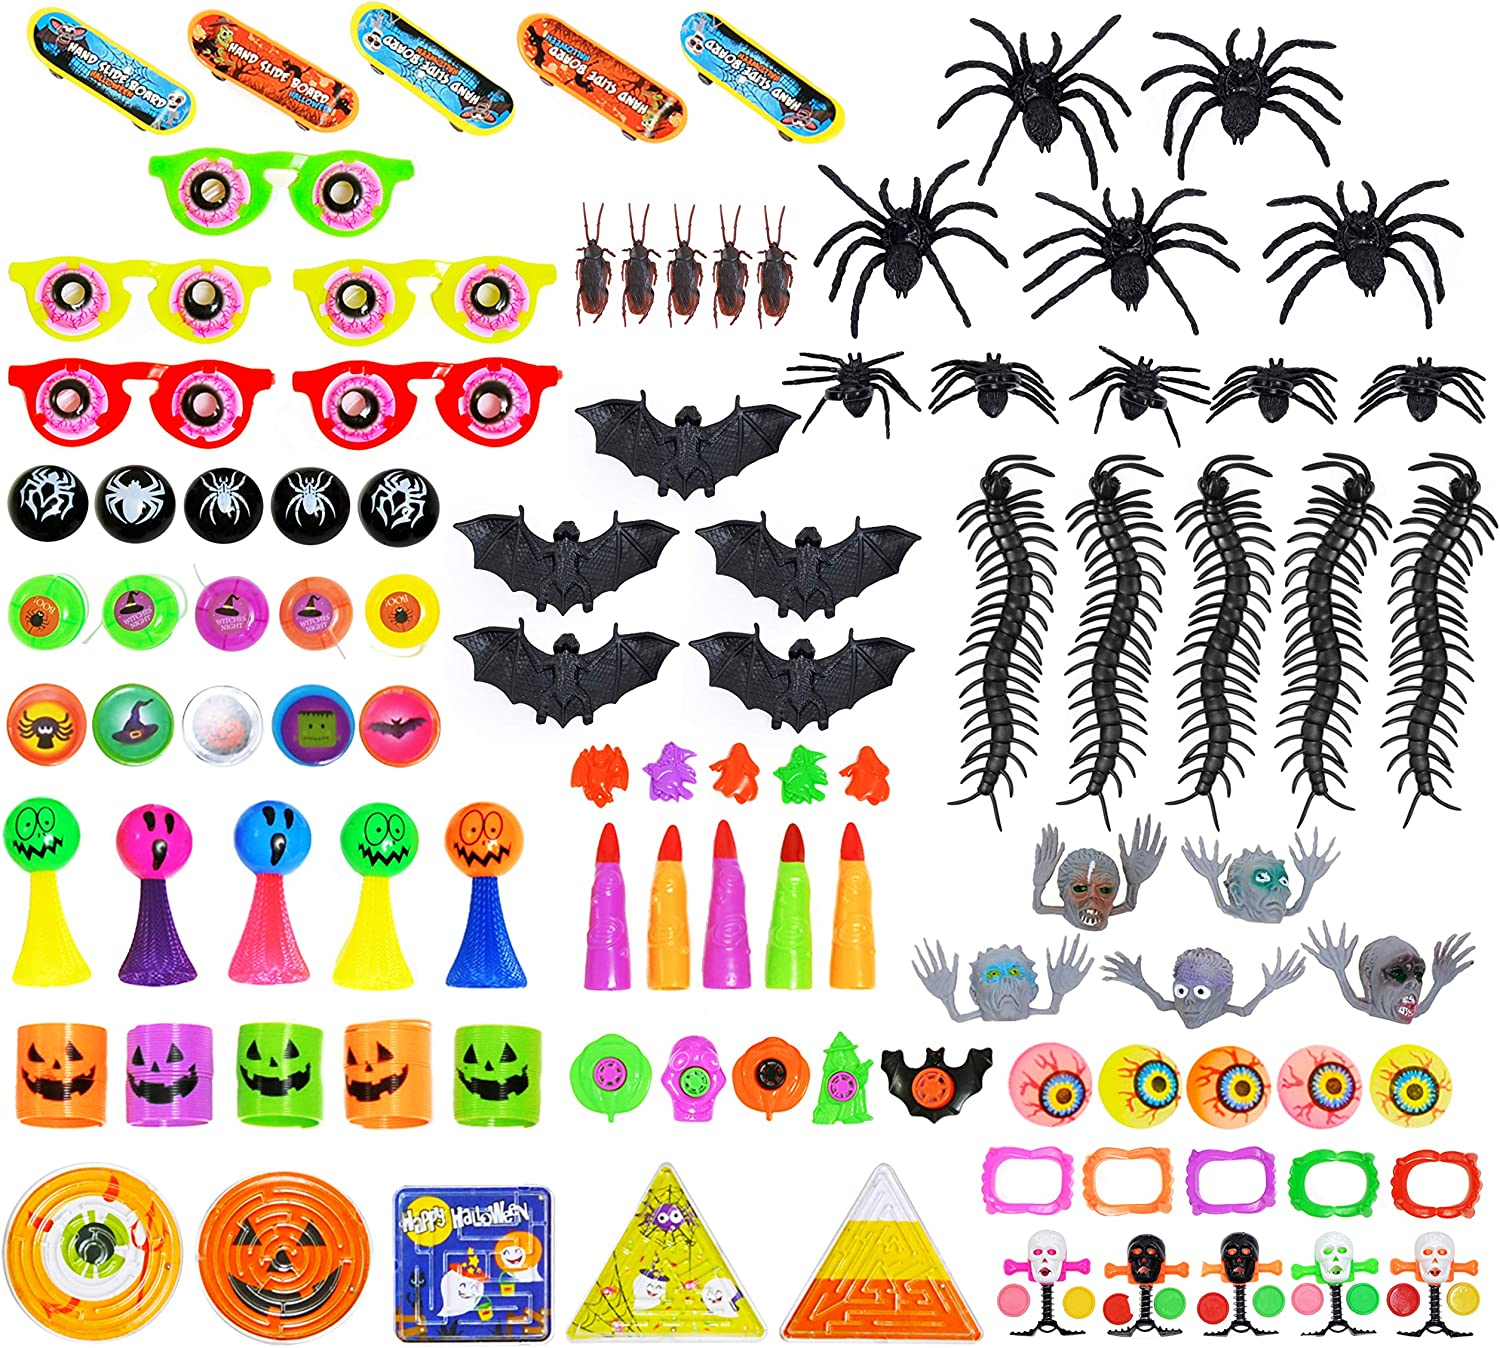 Halloween Owls Muslin 4X6 Set of 10 Party Favor Gift Bags Witches Hats Trick or Treat Class Party Goody Bags Candy Buffet Custom # Available